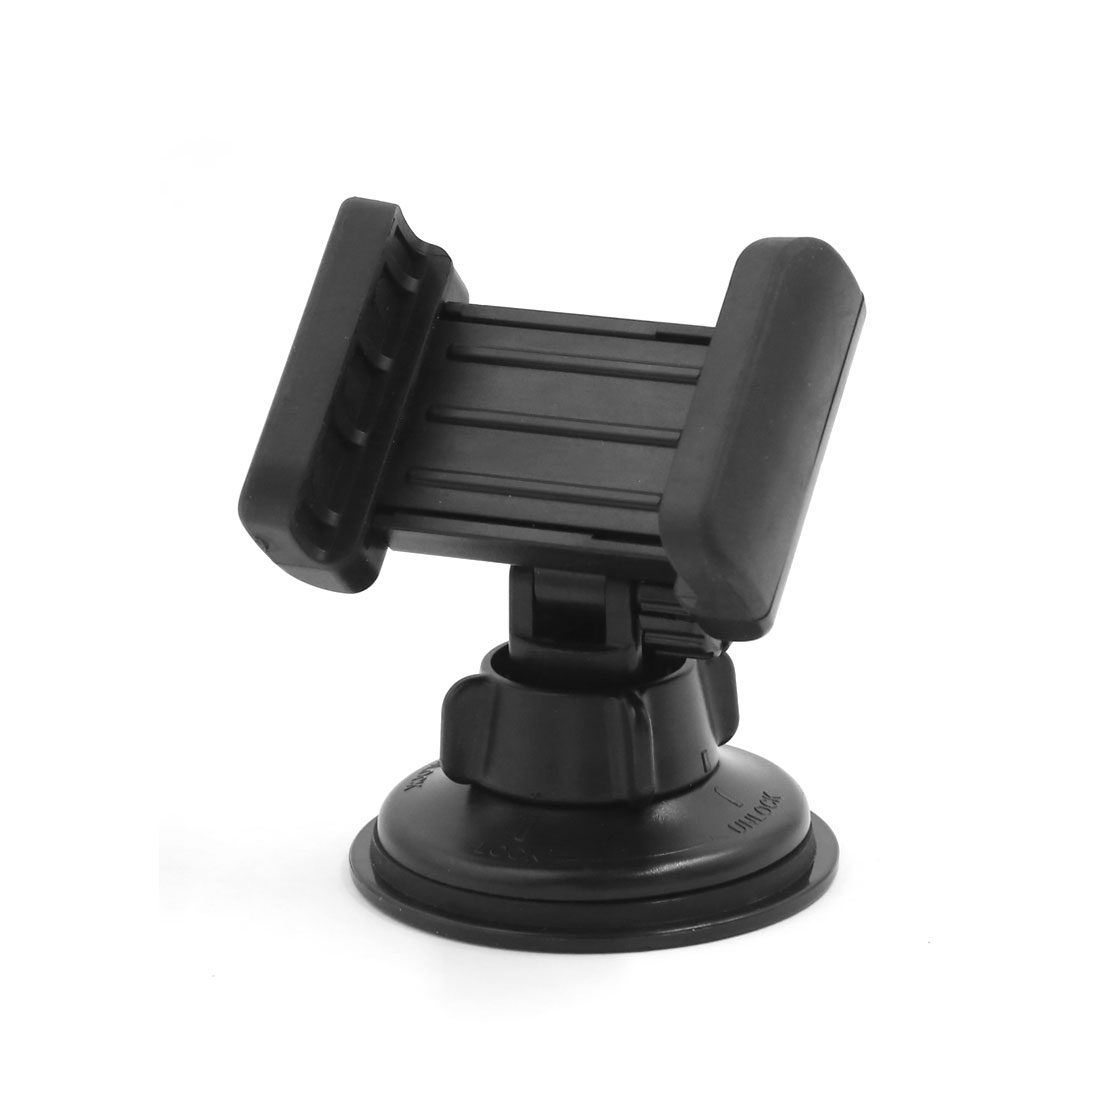 Universal Car Dashboard Mount 360 Degree Adjustable GPS Cell Phone Holder Bracket Stand Black